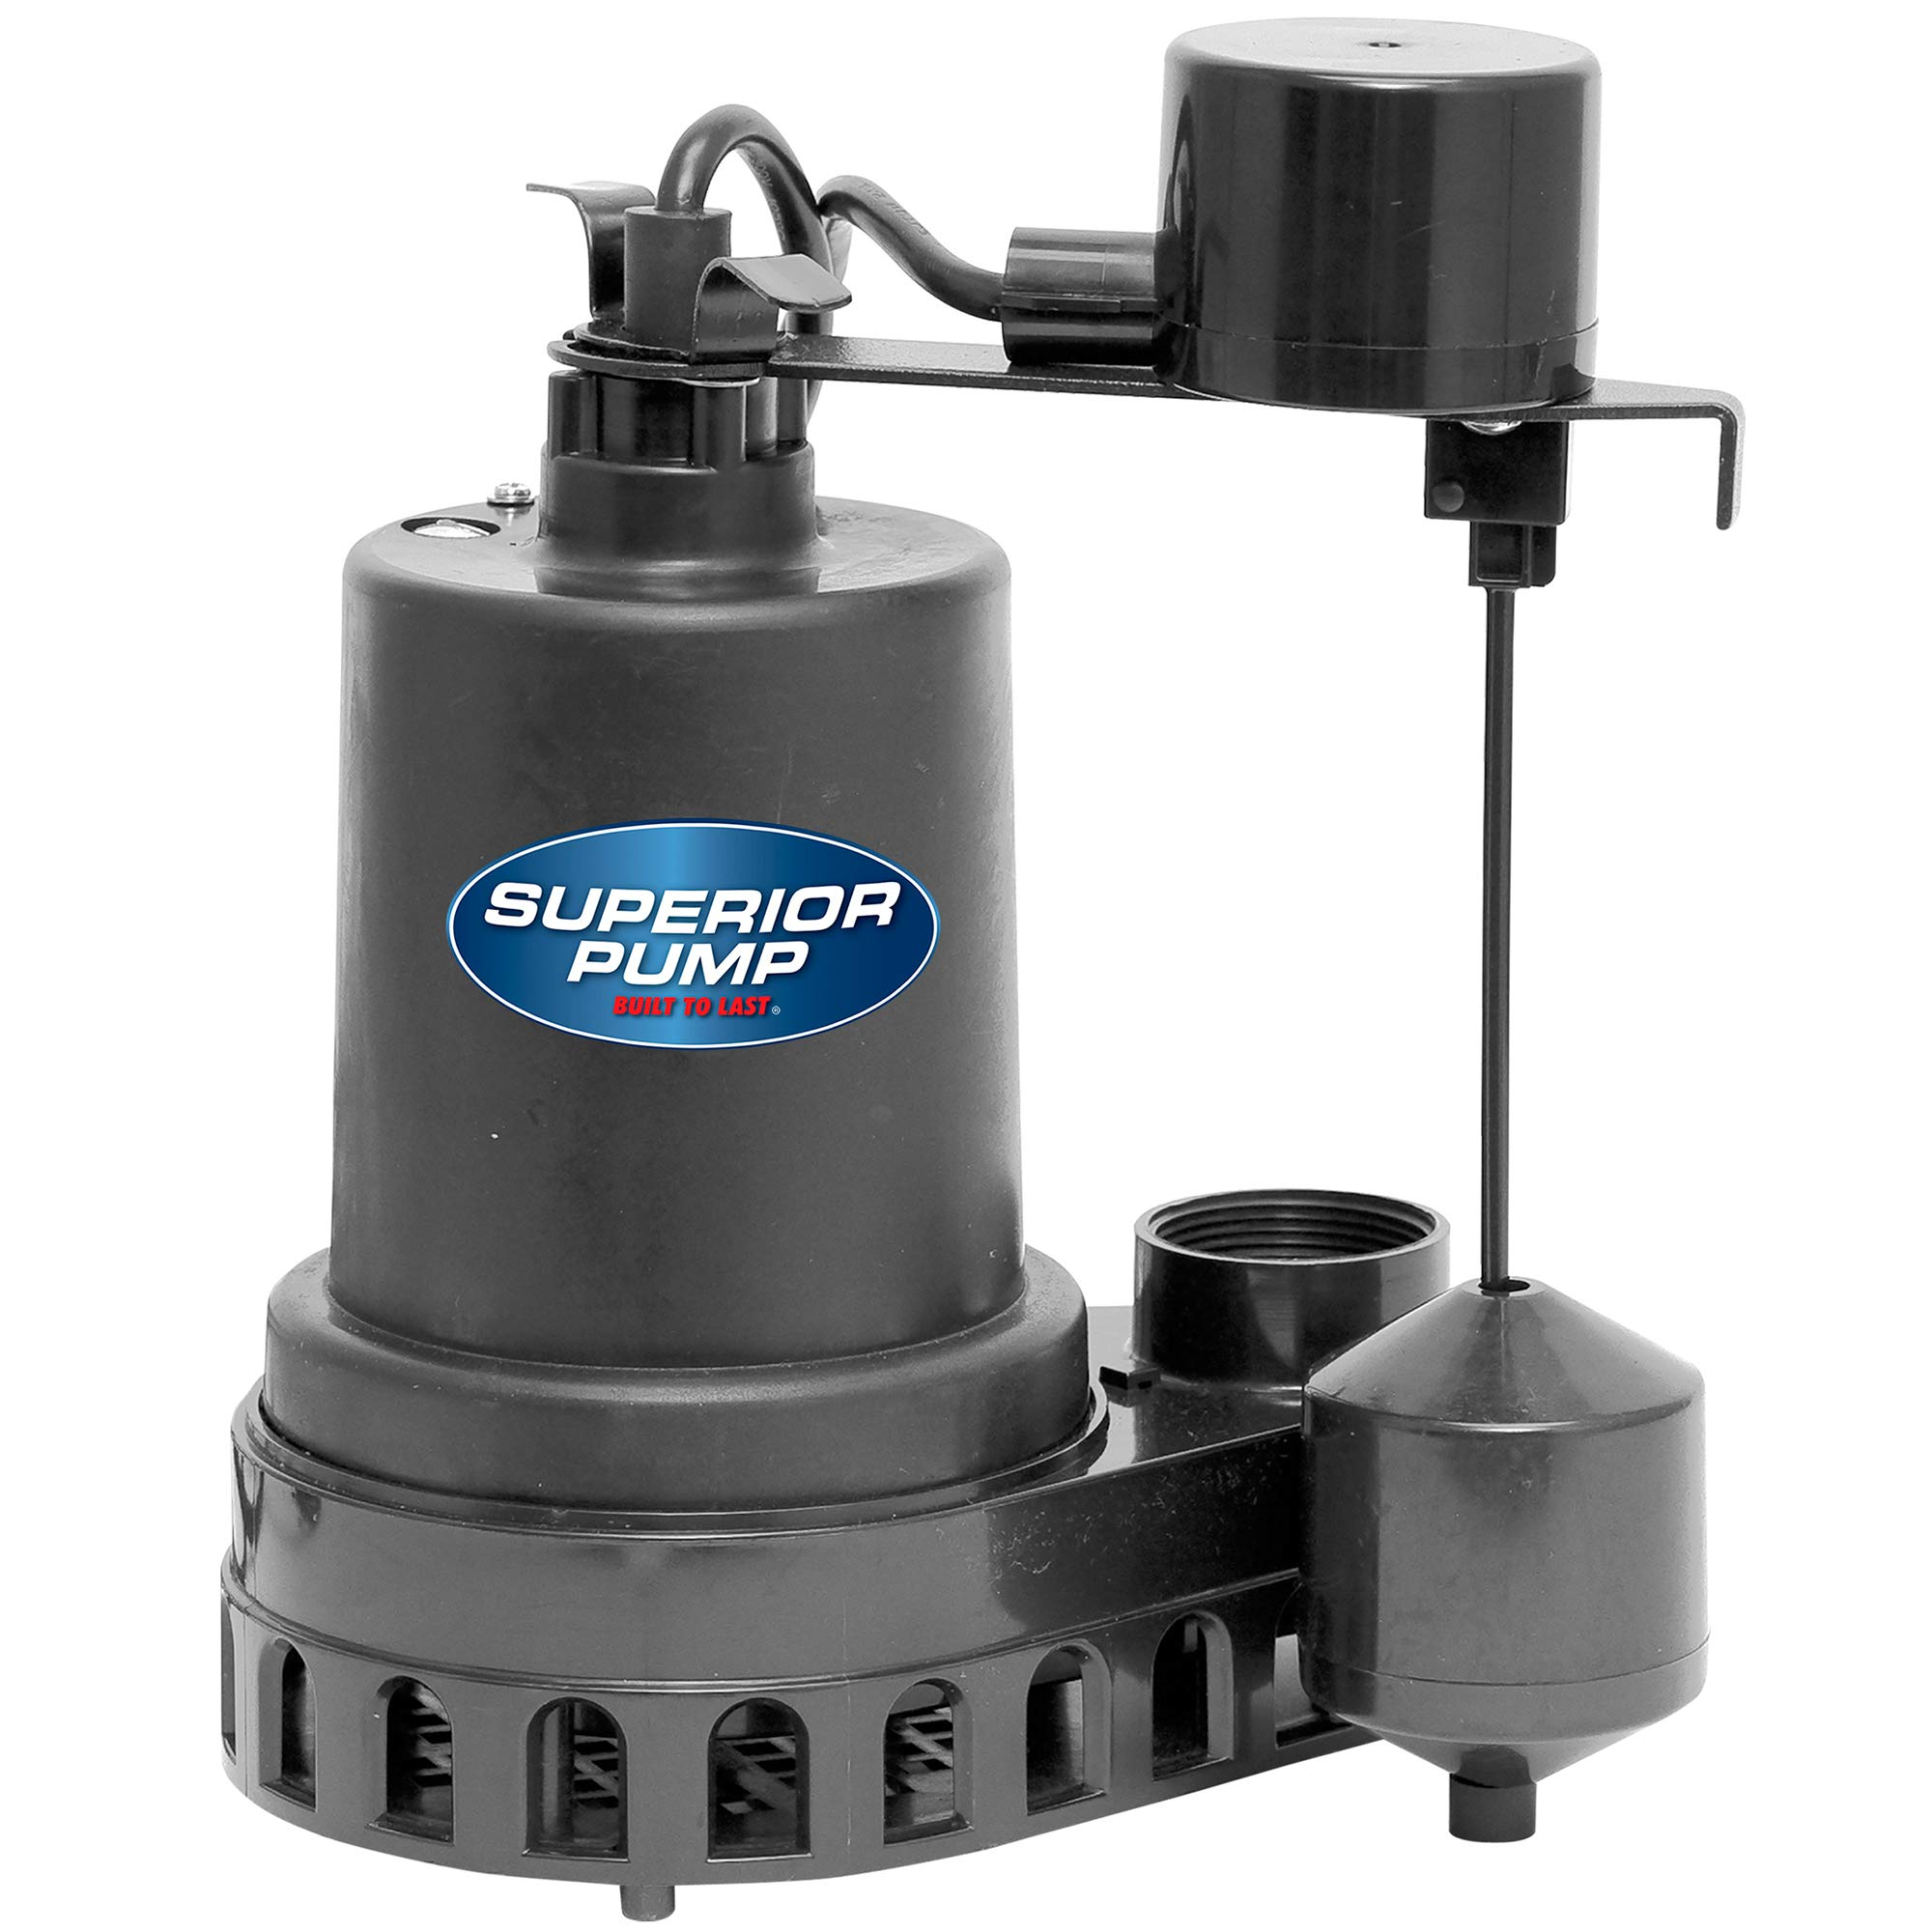 Superior Pump 92572 1/2 HP Thermoplastic Submersible Sump Pump with Vertical Float Switch by Superior Pump